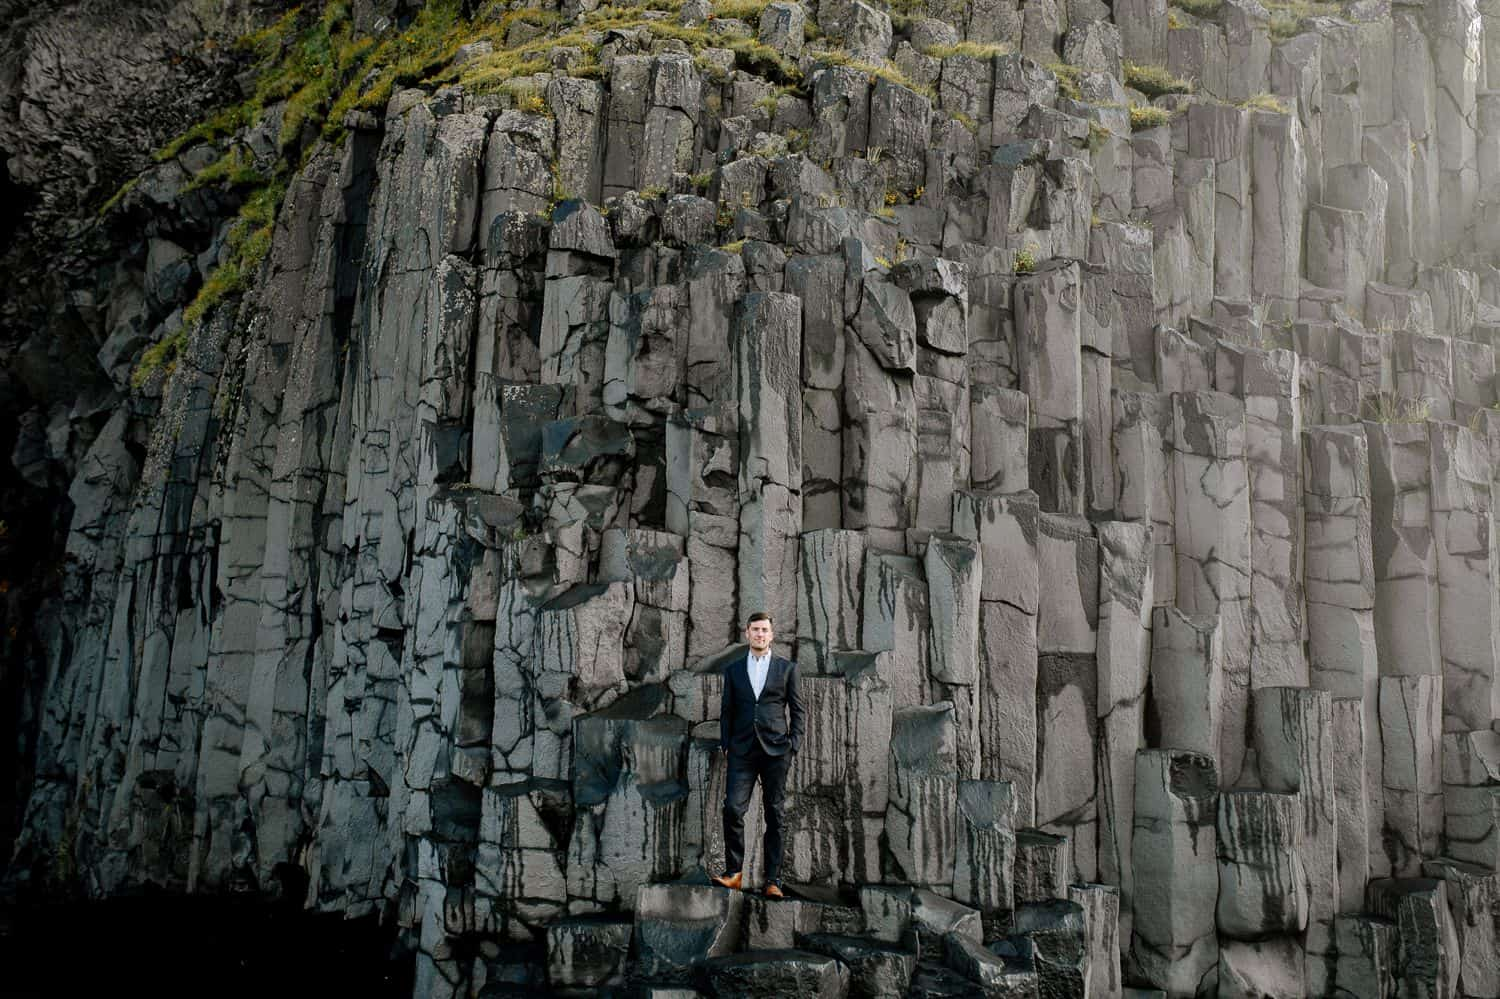 Man in a black suit and white shirt stands on a rock face in Iceland